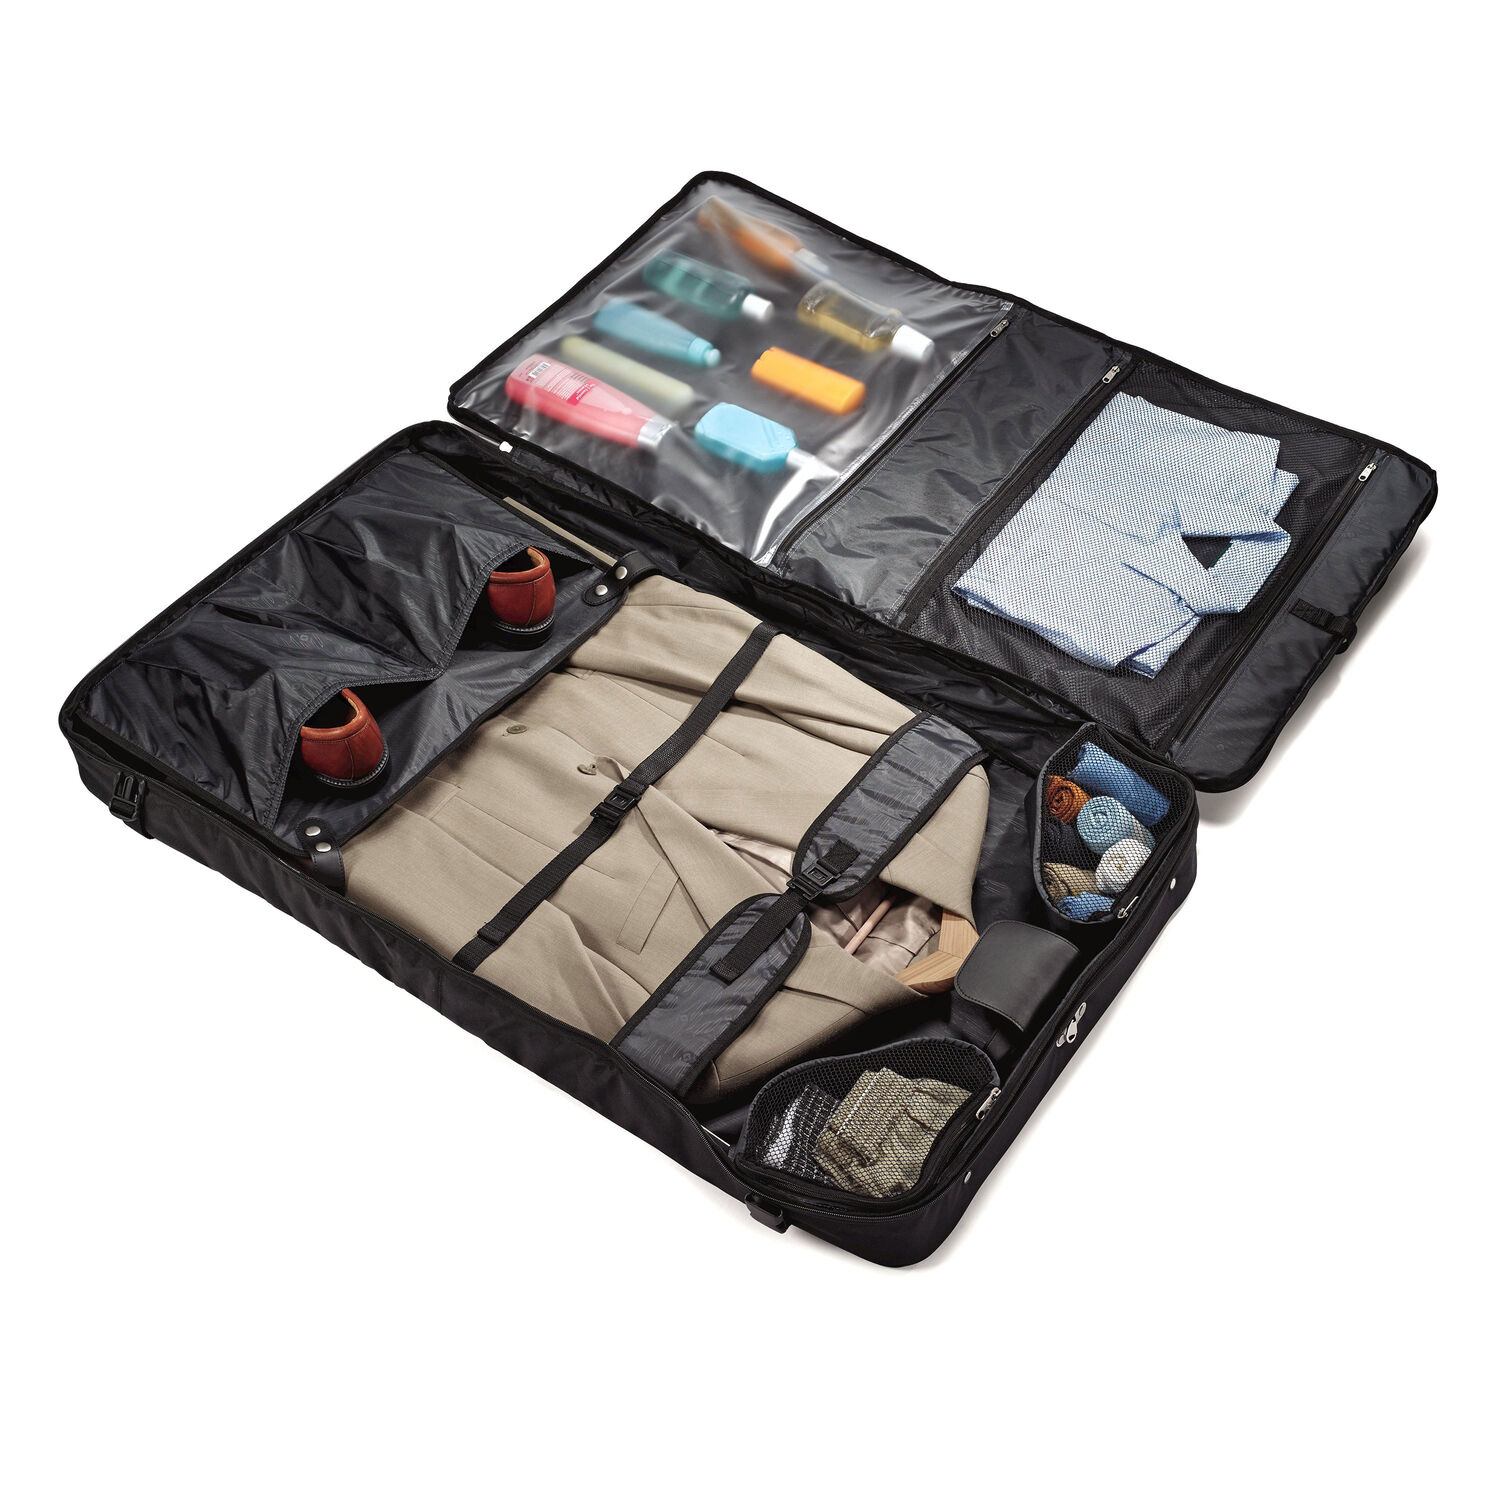 Play Samsonite Aspire Xlite Collection Ultravalet Garment Bag In The Color Black